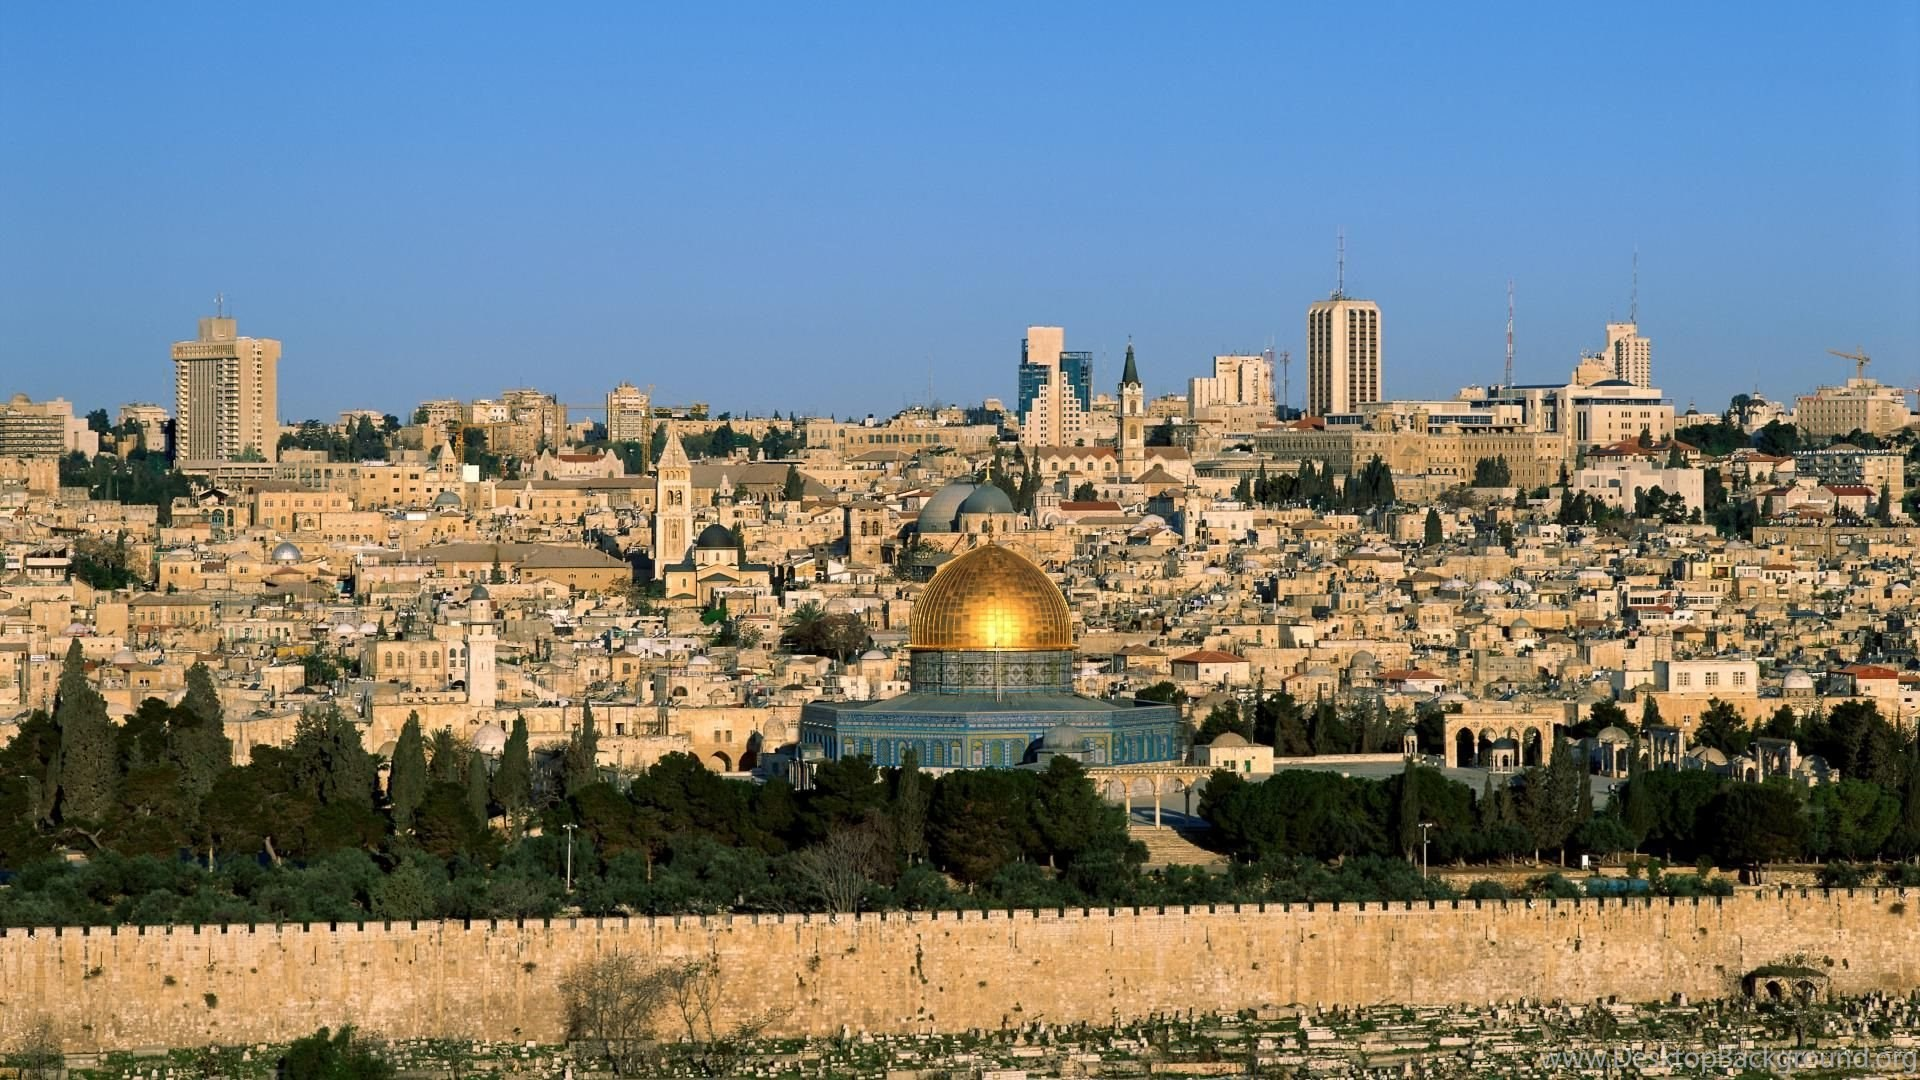 Free Full HD Wallpapers Jerusalem Israel Hd Wallpapers Is